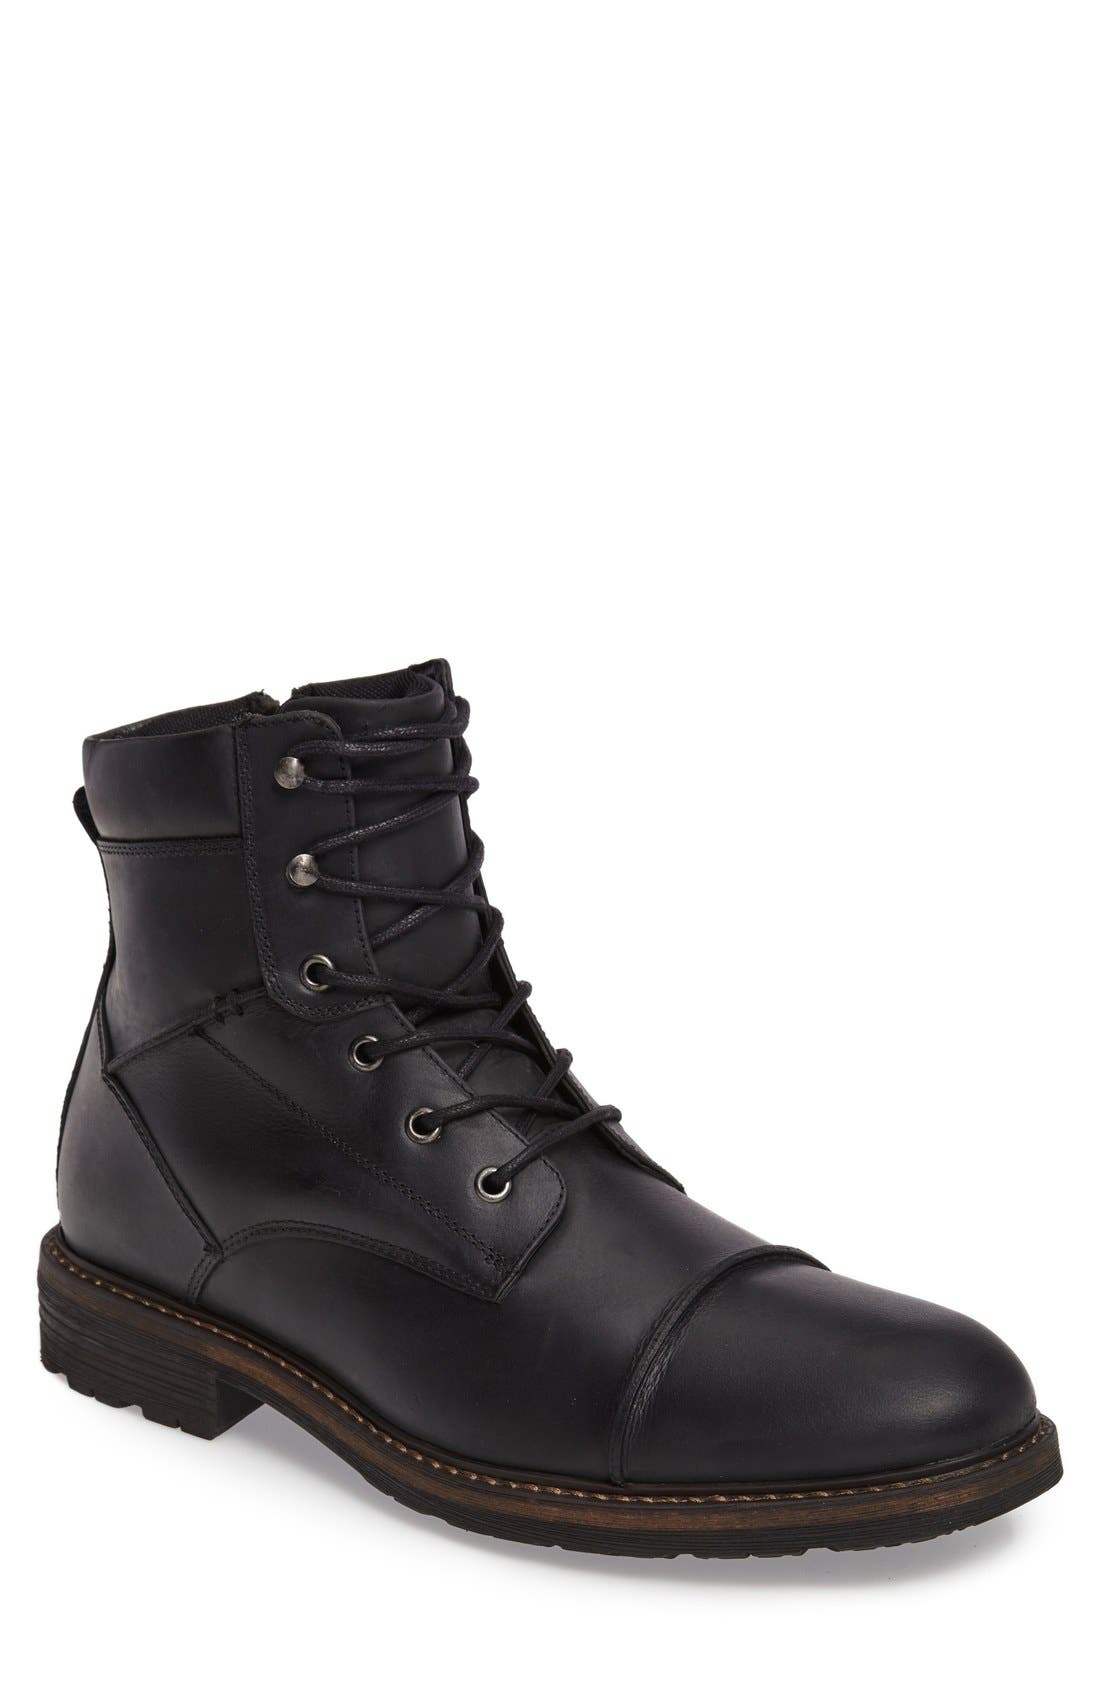 Derek Cap Toe Boot,                         Main,                         color,